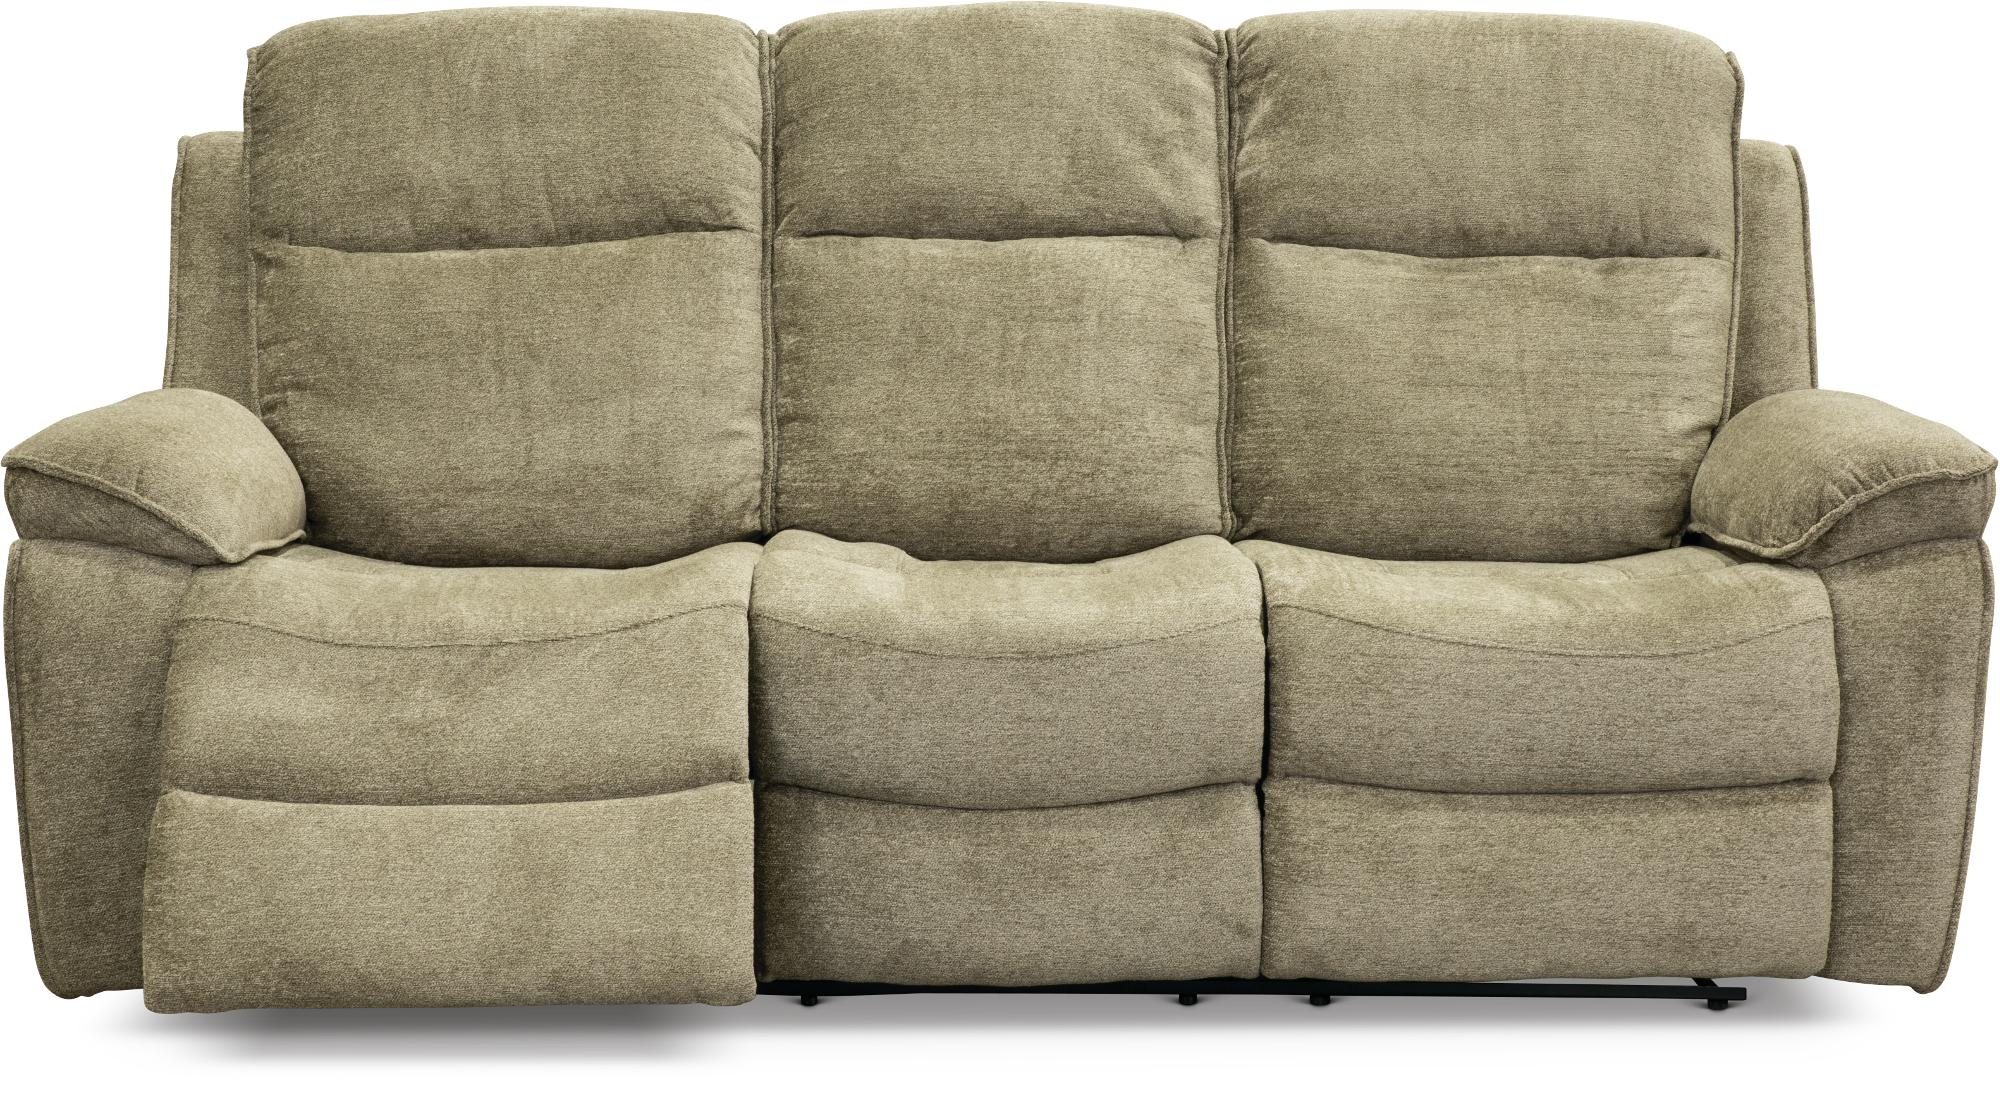 Stone Brown 7 Piece Reclining Living Room Set Castaway